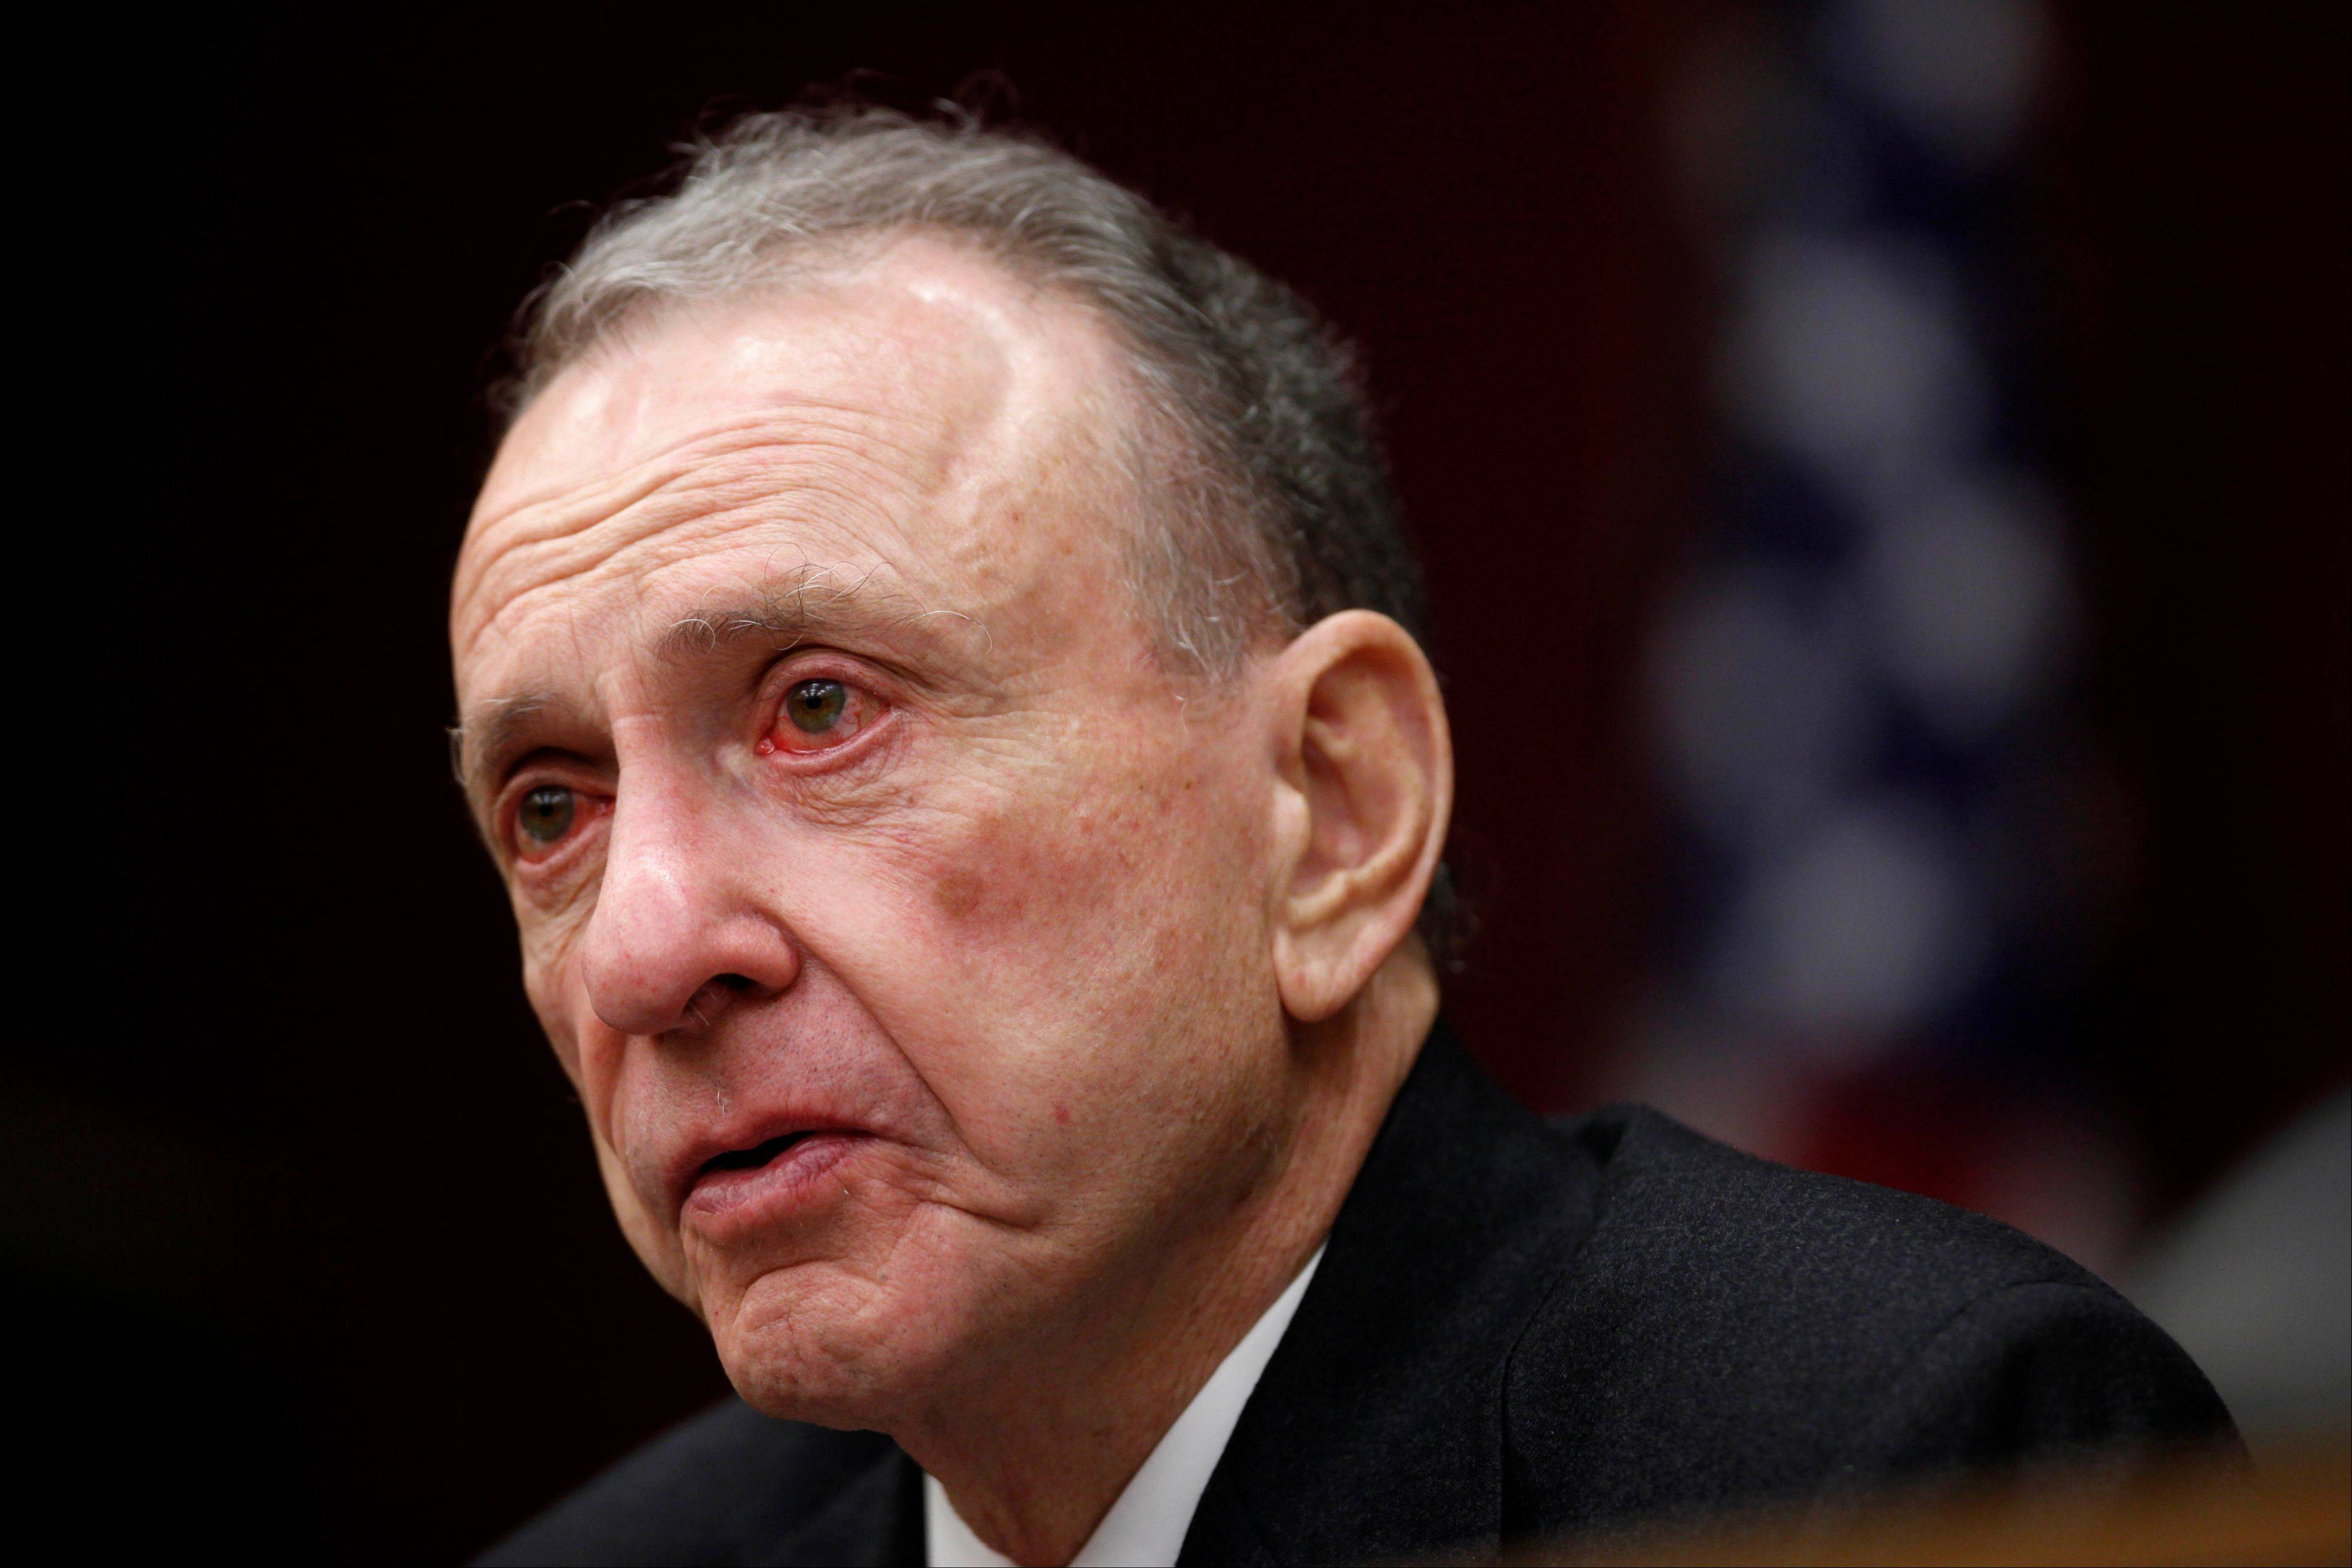 Former U.S. Sen. Arlen Specter, a longtime Senate moderate and architect of one-bullet theory in the assassination of John F. Kennedy, died on Oct. 14. He was 82.